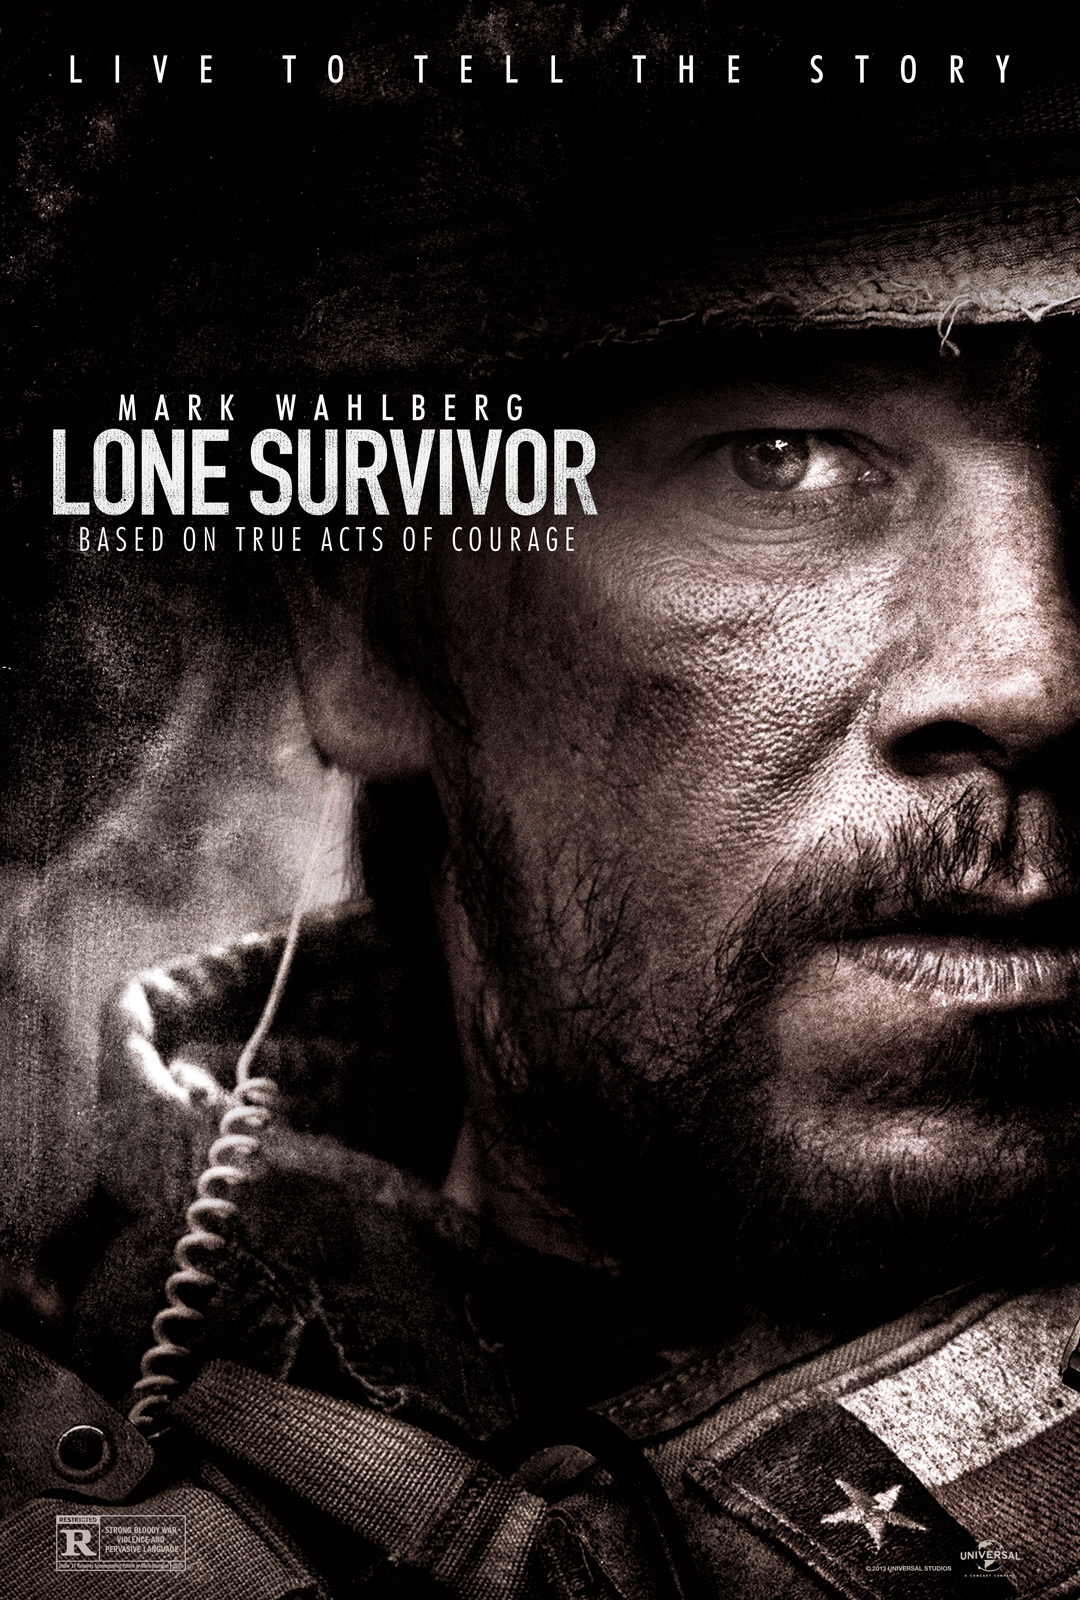 Lone Survivor (2013) 720p [1.08 GB] – 1080p [3.36 GB] BluRay x264 Dual Audio Hindi English | G-Drive |